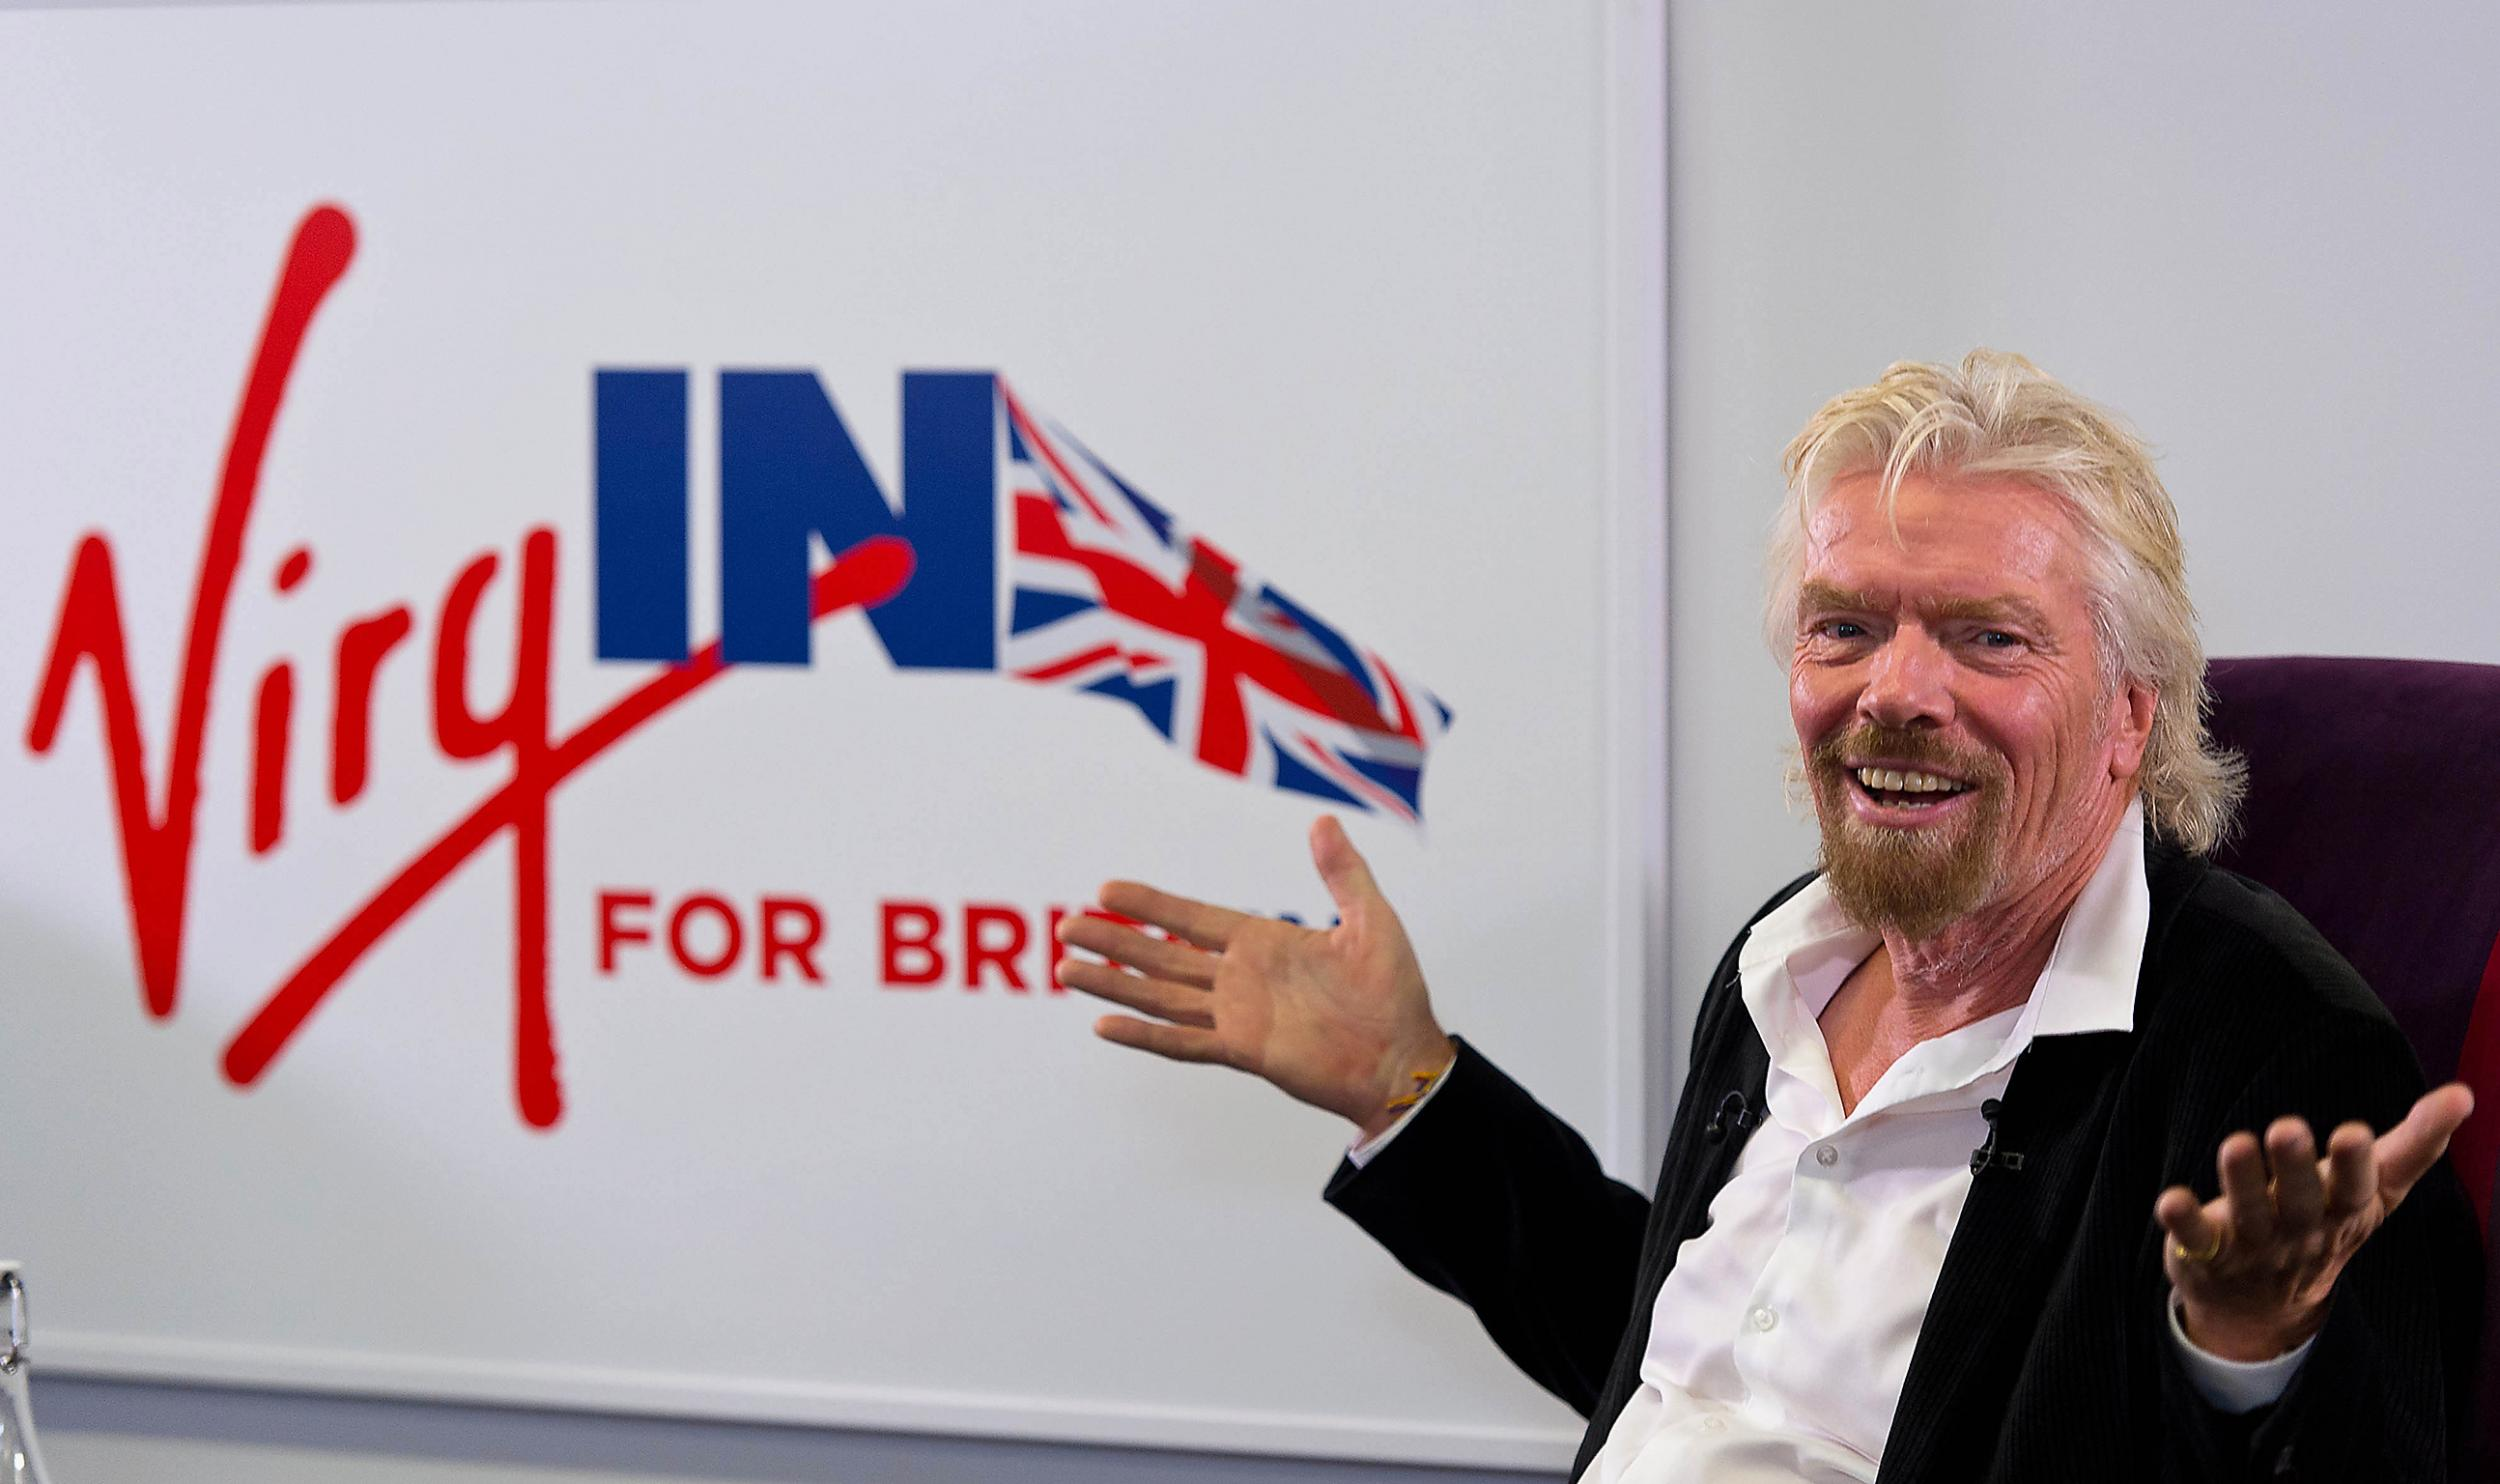 richard branson Ted talk subtitles and transcript: richard branson talks to ted's chris  anderson  and in order to protect the jobs of the people who worked for the  airline, and.